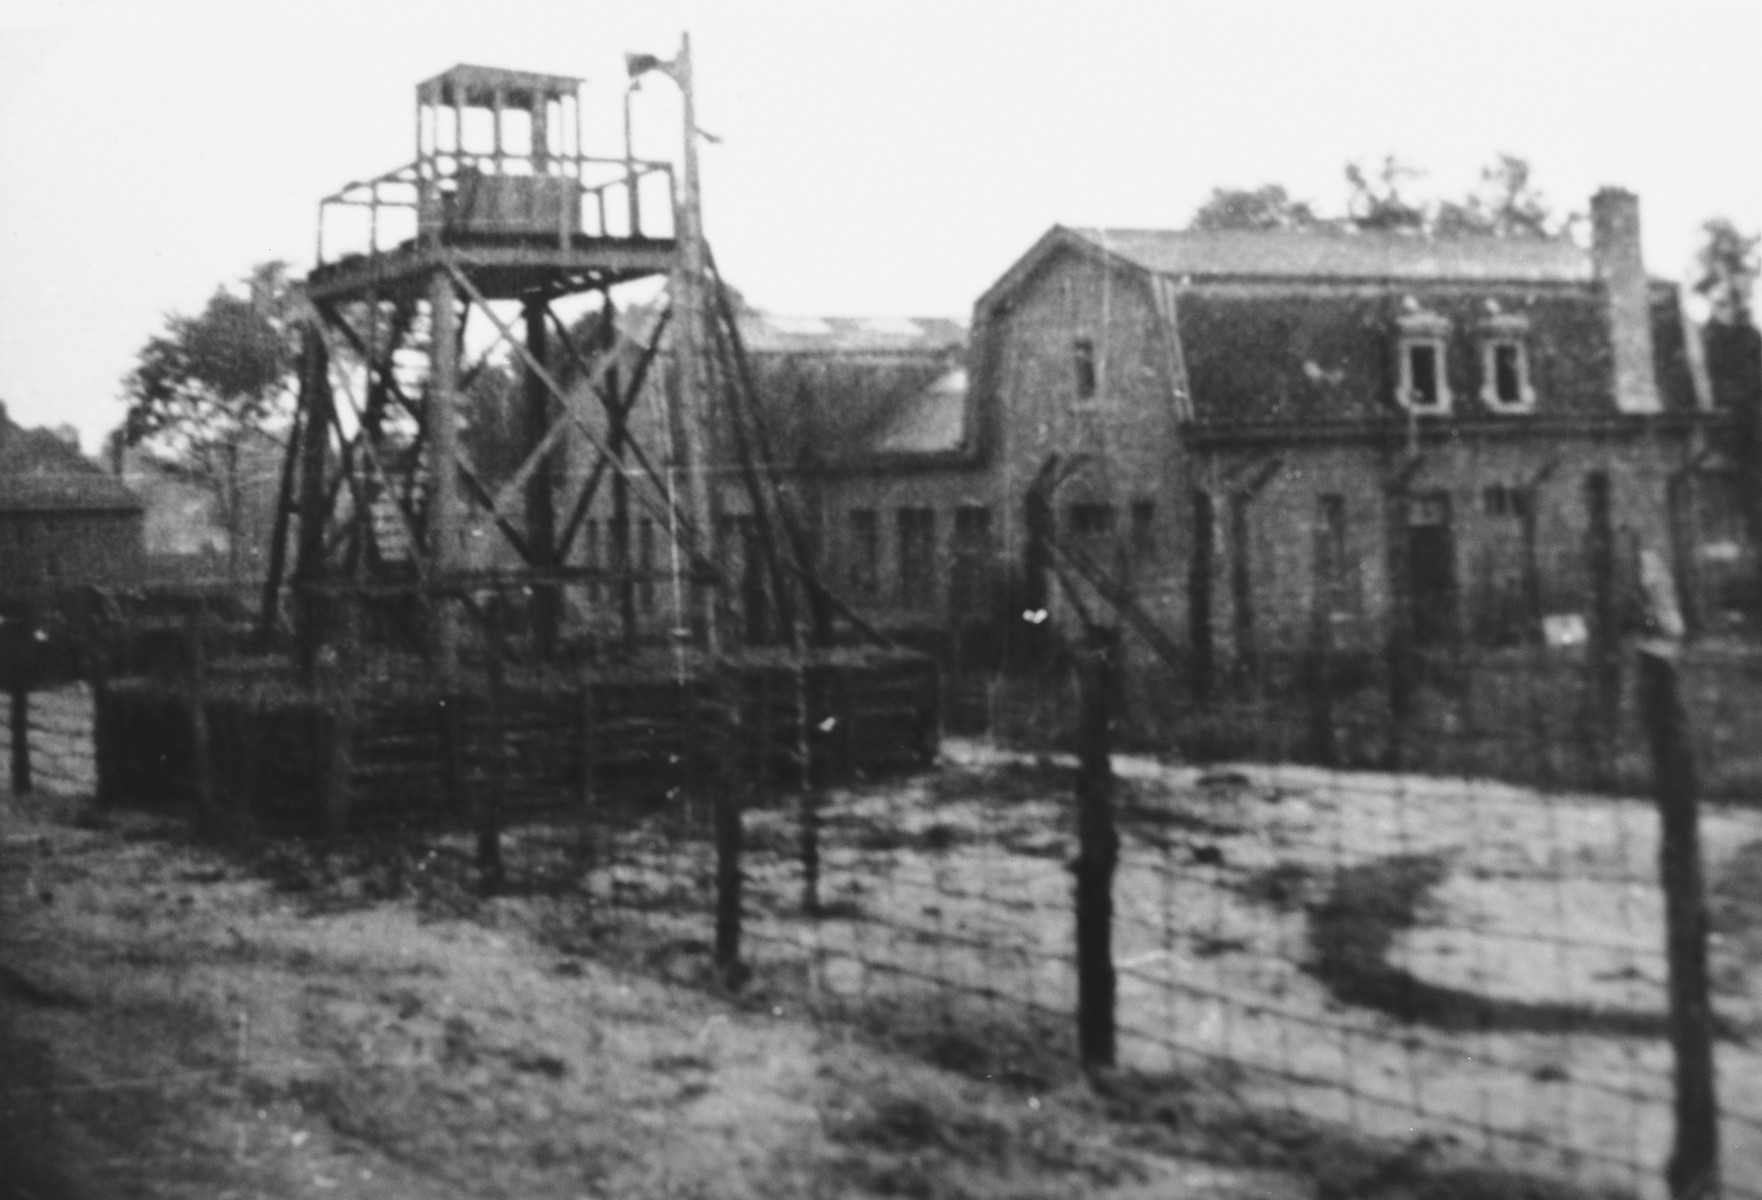 View of the watch tower and barbed wire fence surrounding the ...